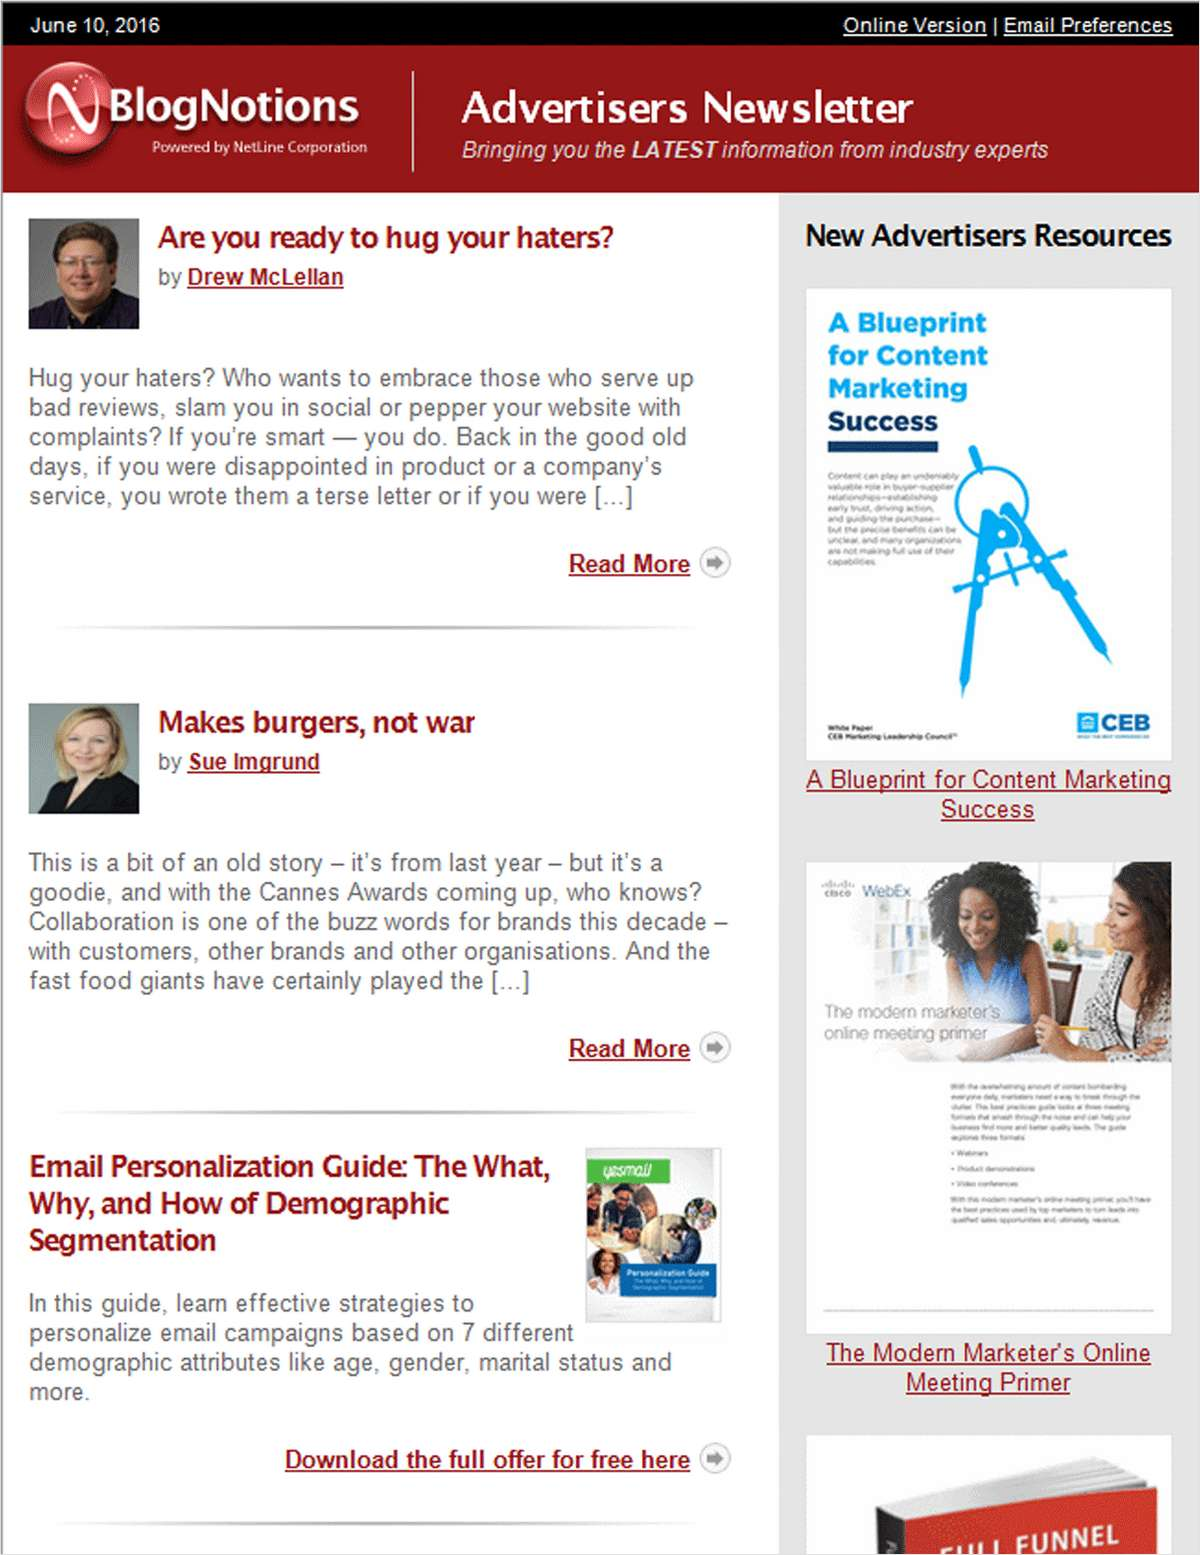 BlogNotions Advertisers Newsletter: Monthly eNewsletter Featuring Blogs from Industry Experts